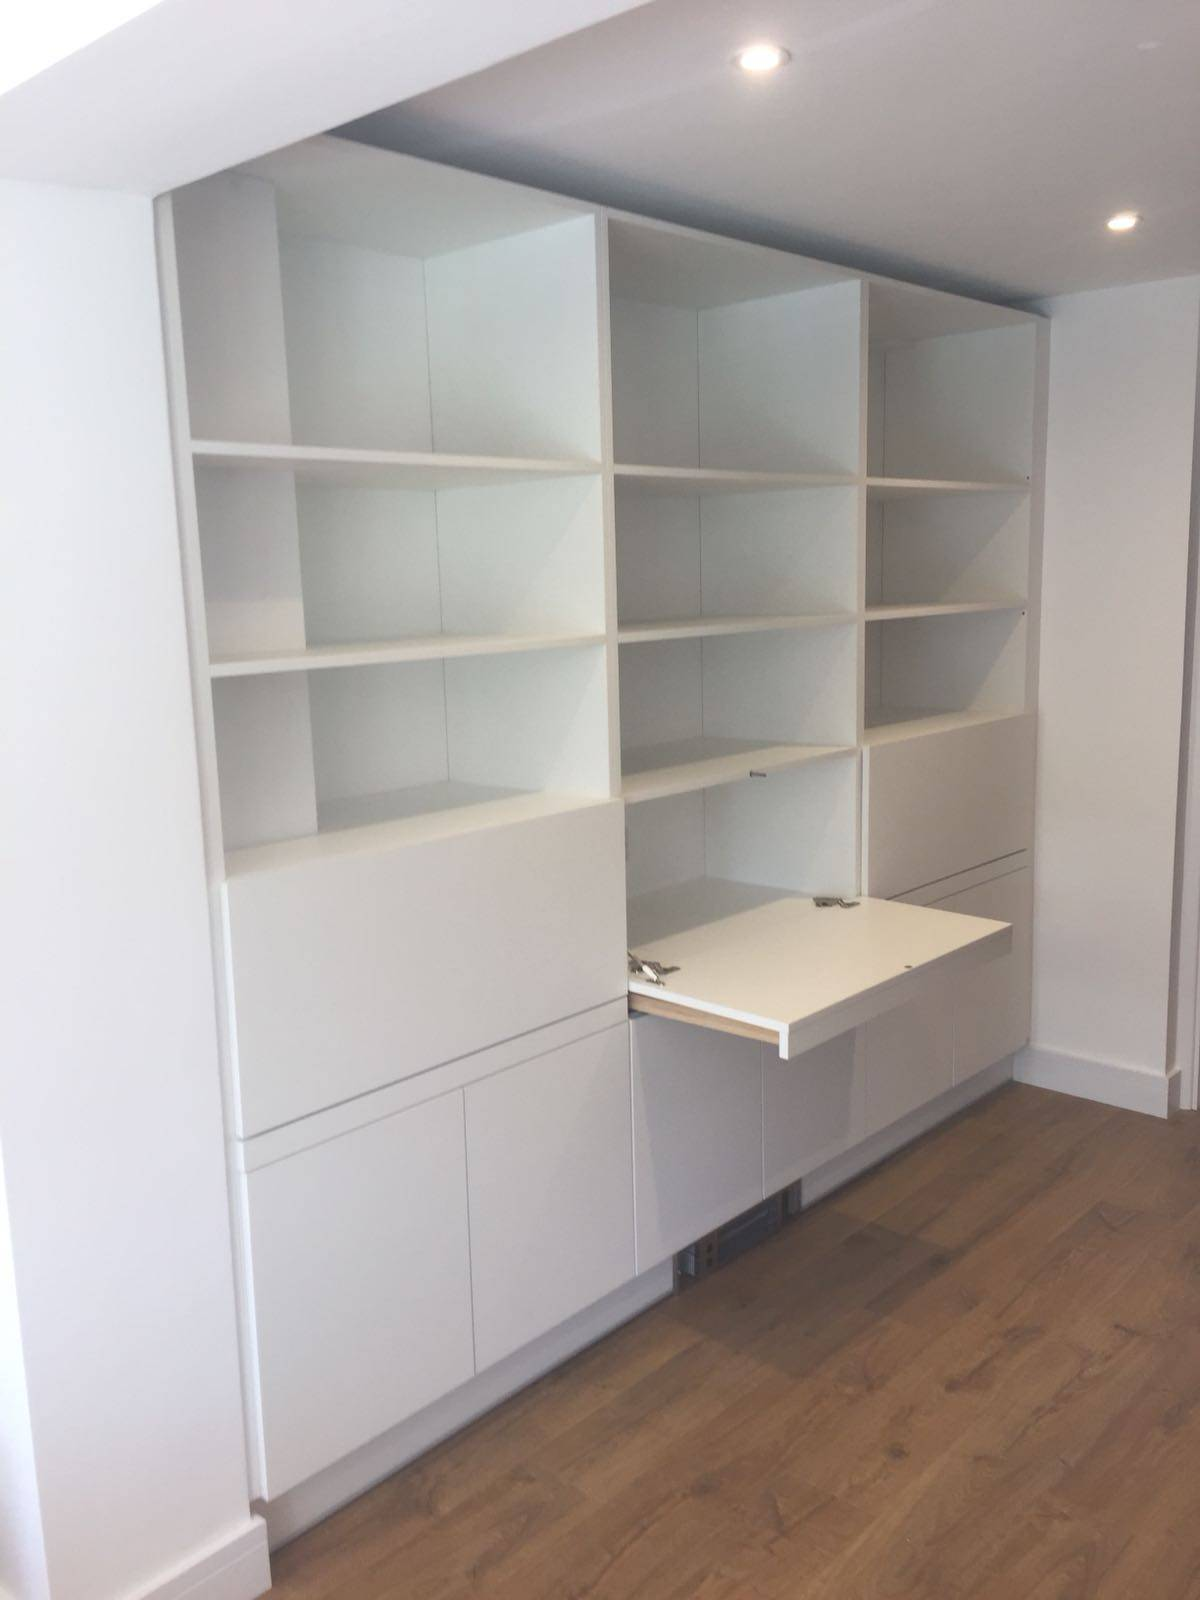 Bespoke Cupboard, Desk & Storage Solution